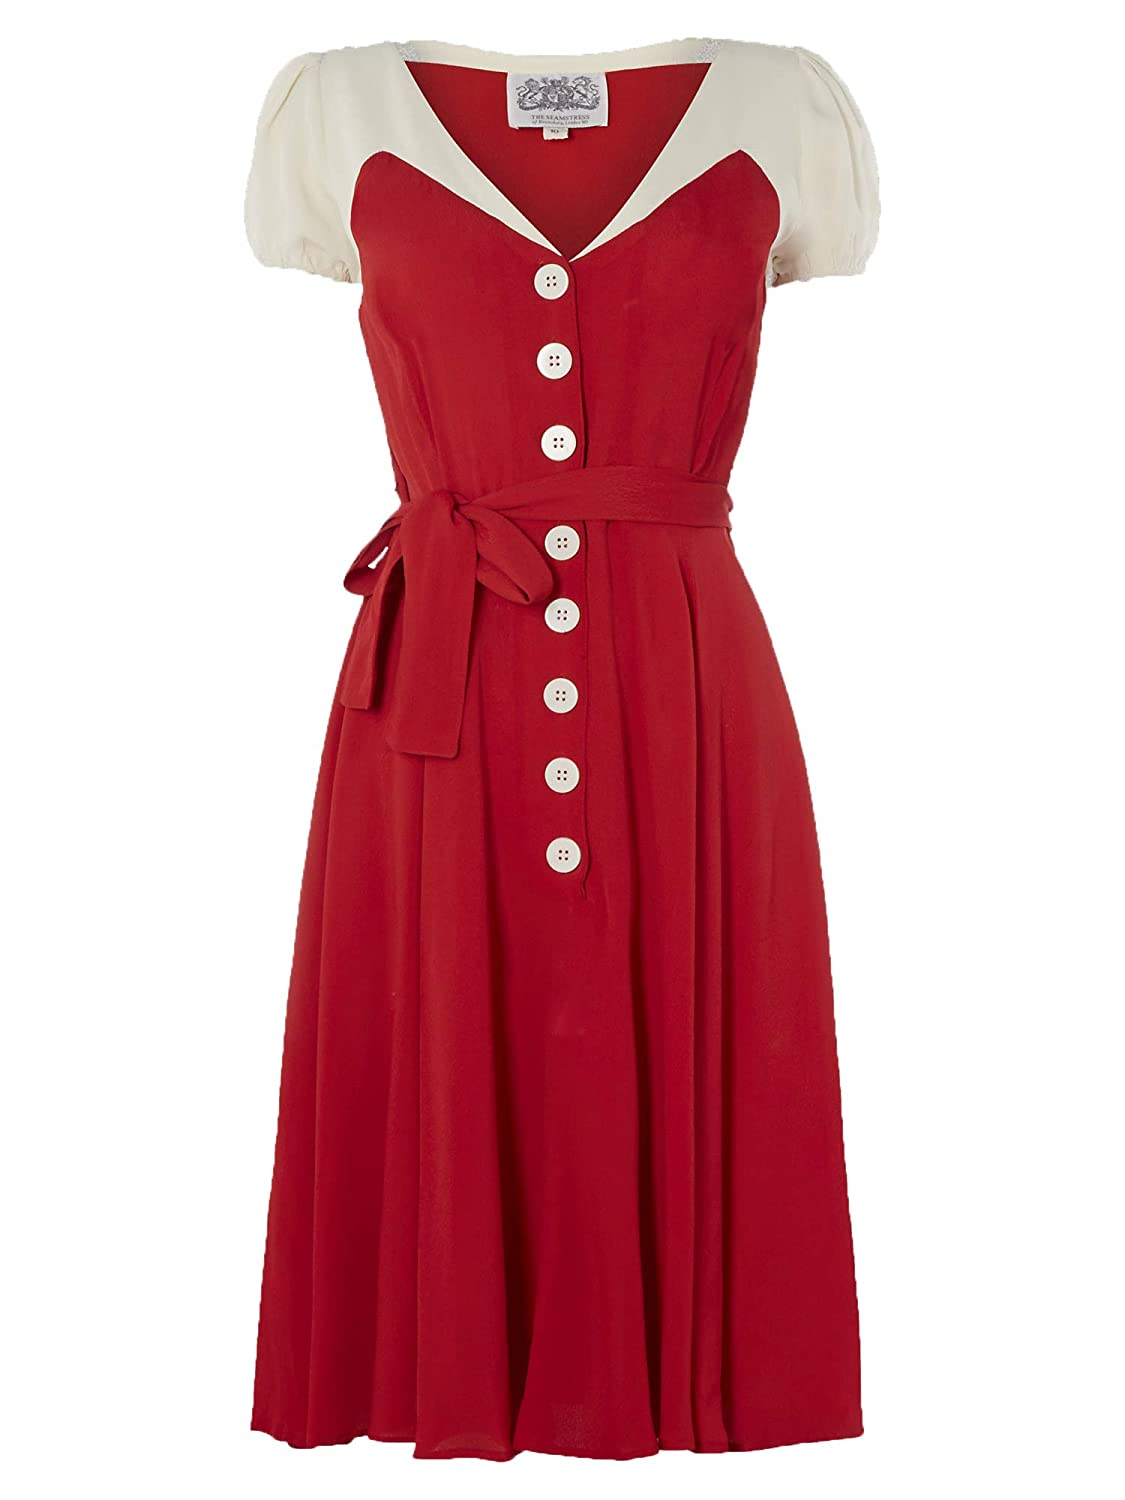 2ece13b050c67 The Seamstress of Bloomsbury Rosalyn Dress in Red with Contrast Ivory  1940's Authentic Vintage Style Clothing: Amazon.co.uk: Clothing